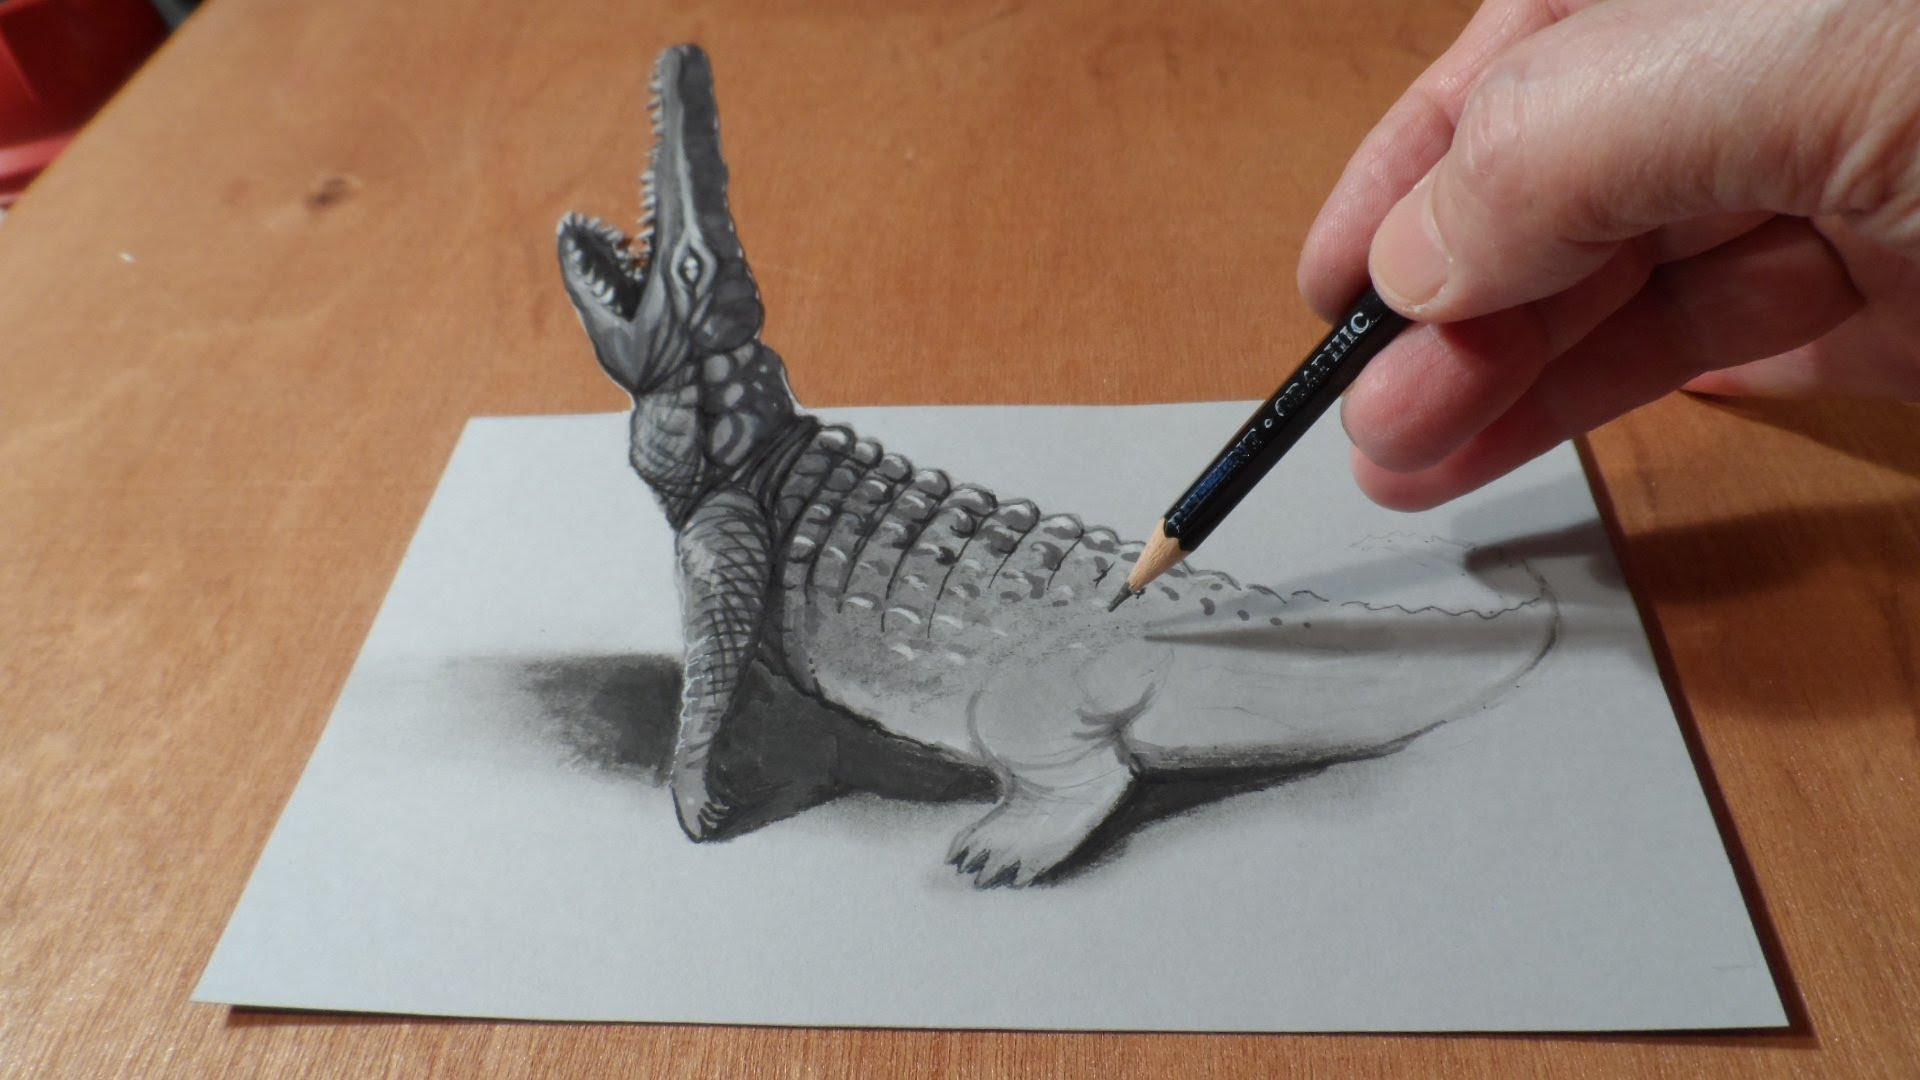 Drawn bridge landscape On Illusion Trick Crocodile YouTube